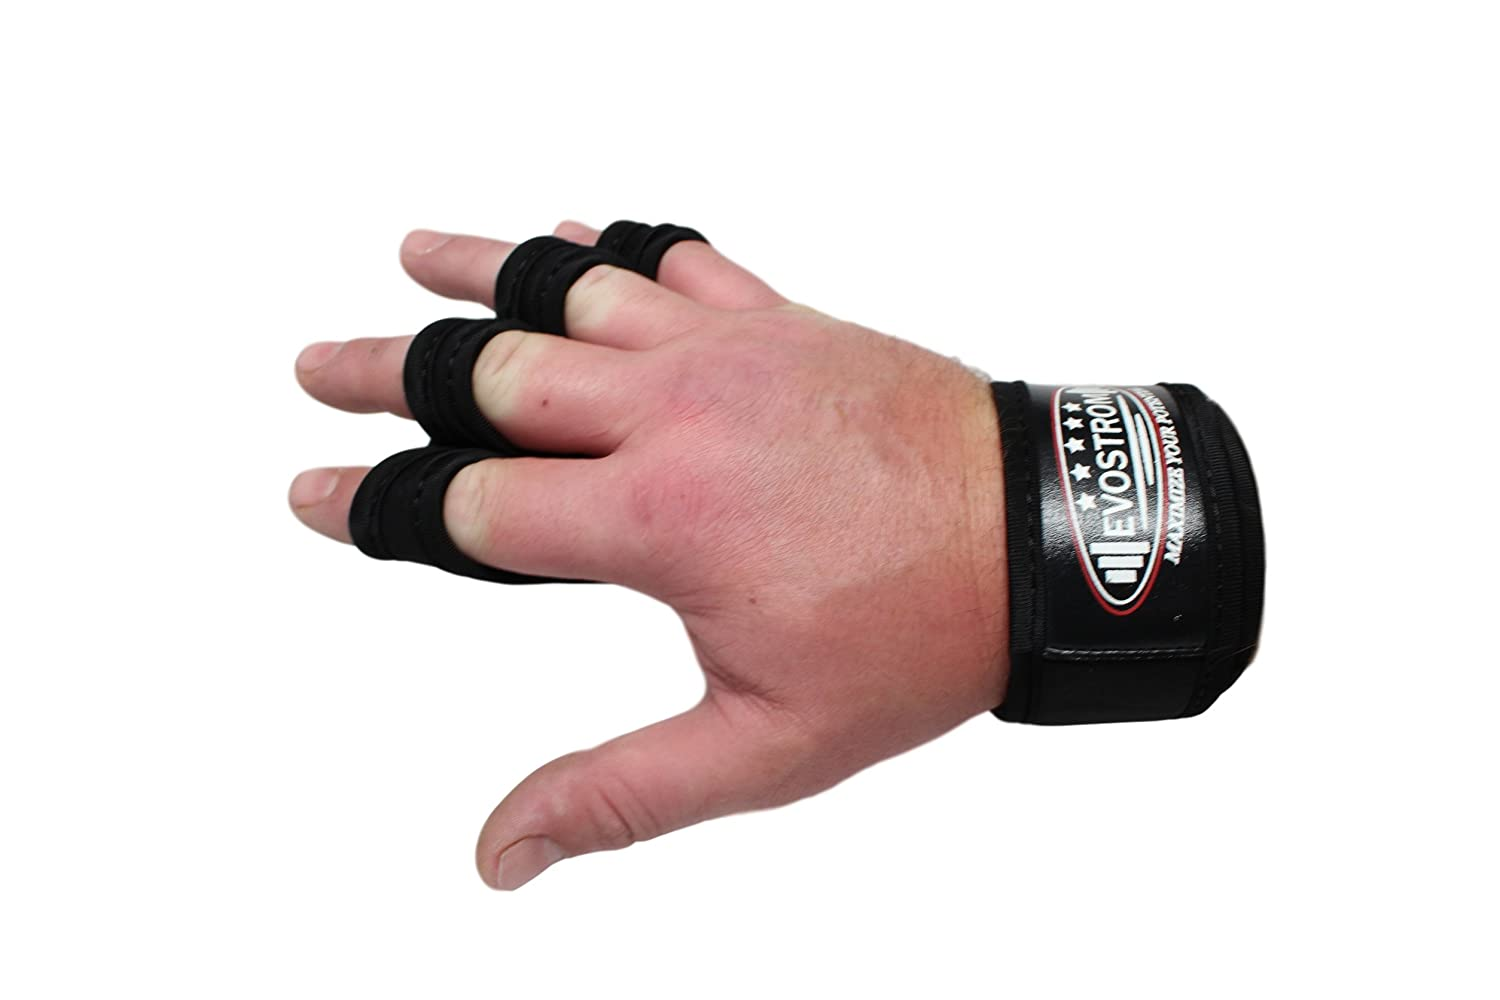 EVOSTROM Cross Training Gloves with Wrist Support for Fitness Strong Grip Suits both Men /& Women Gym Workout /& Powerlifting Silicone Padding to avoid Calluses 1 pair Weightlifting